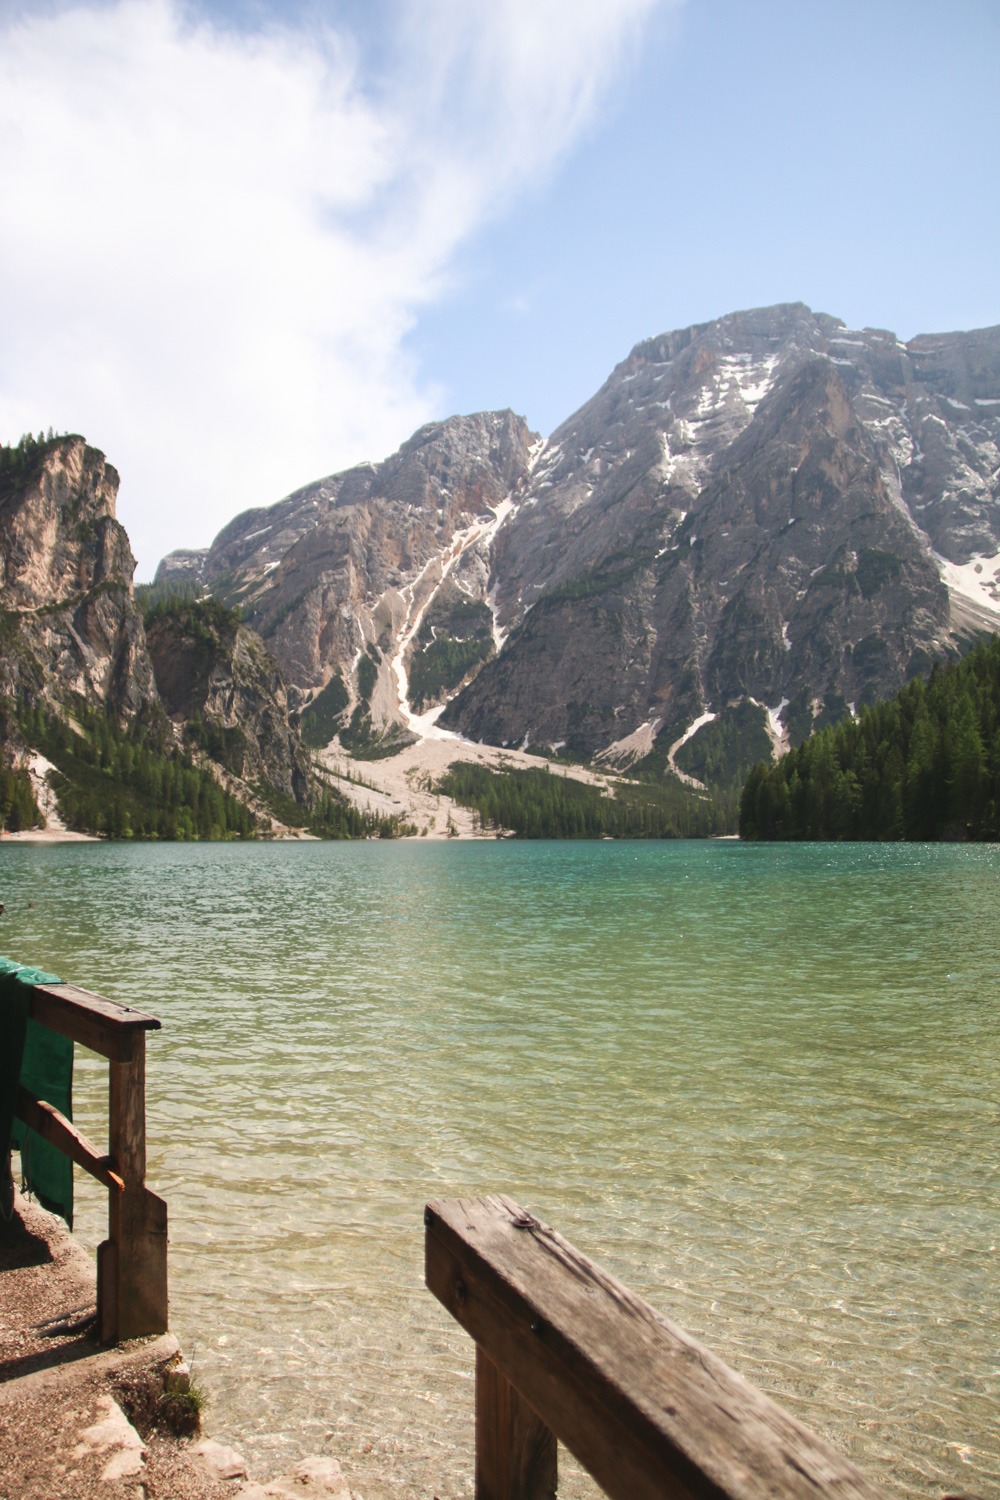 Views over Lago di Braies